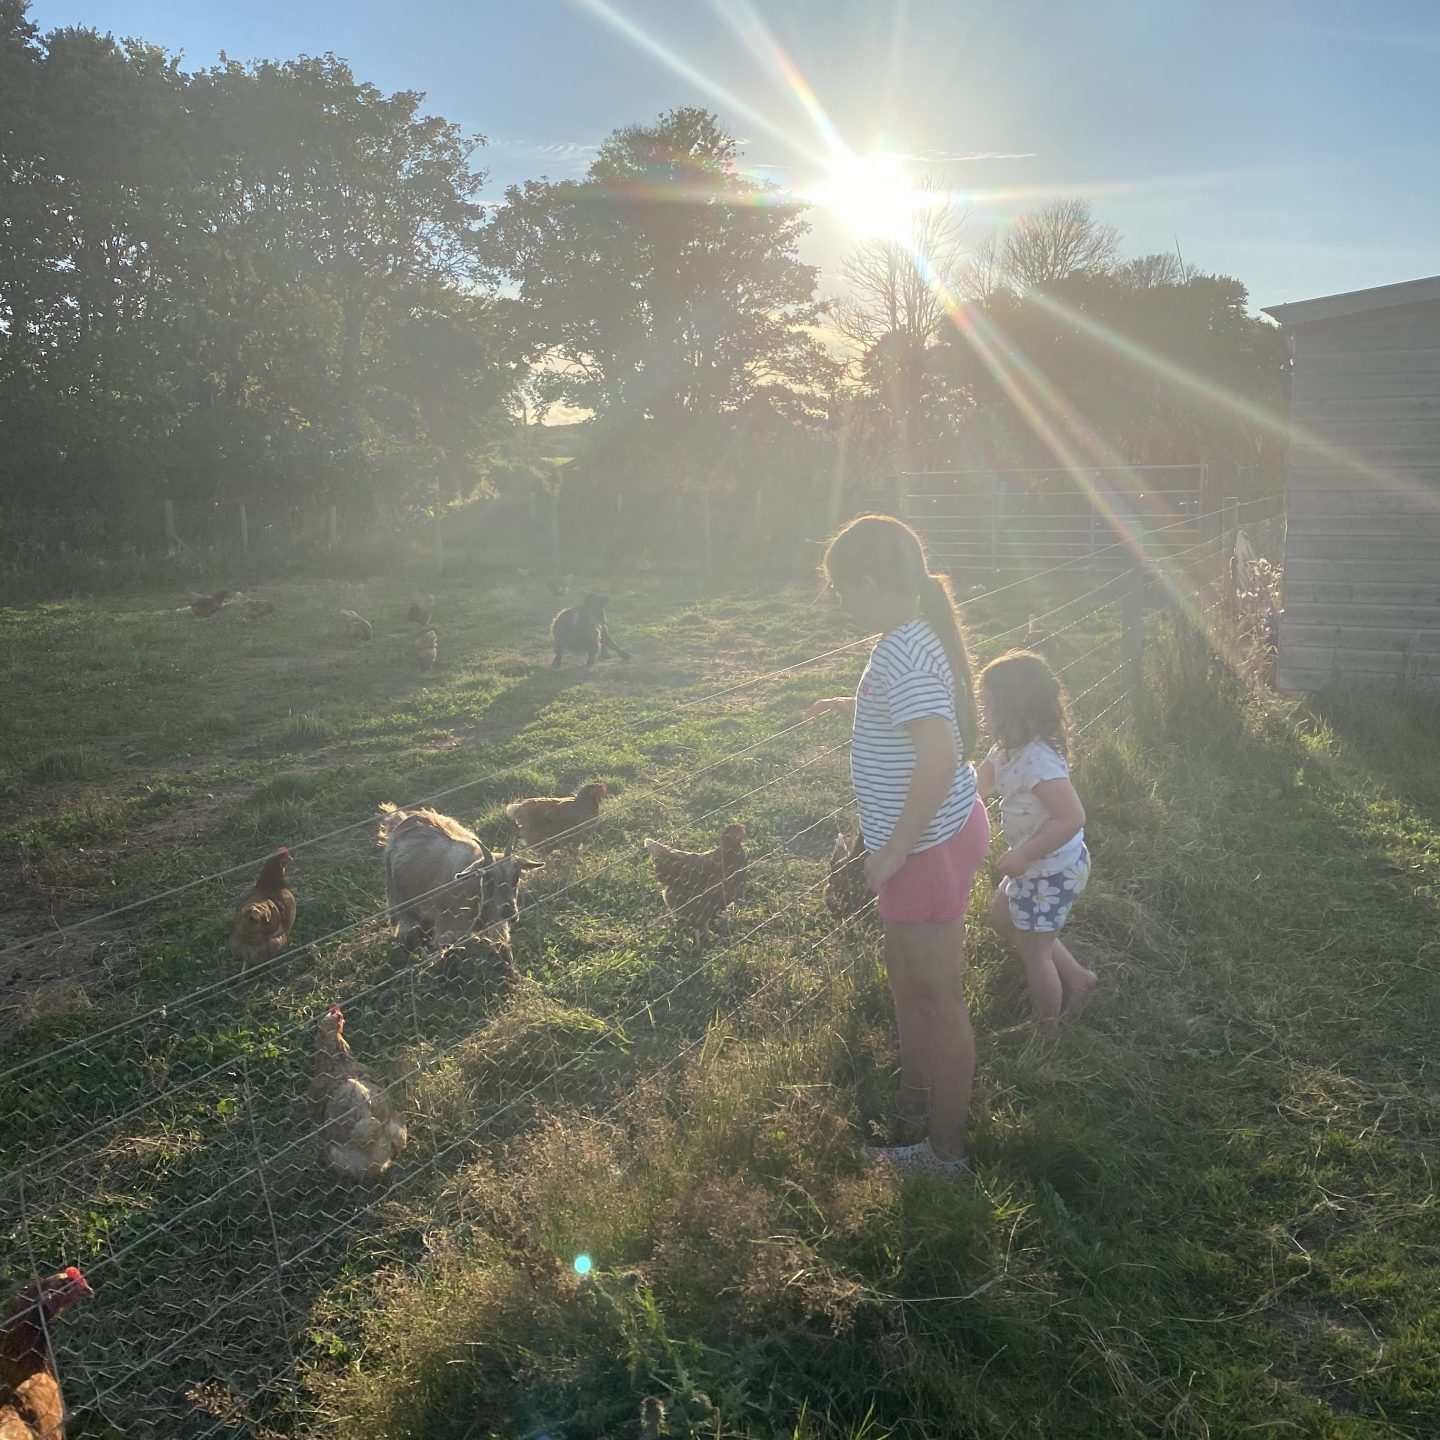 Trerise farm Campsite with 2 children looking at chickens in the sunset